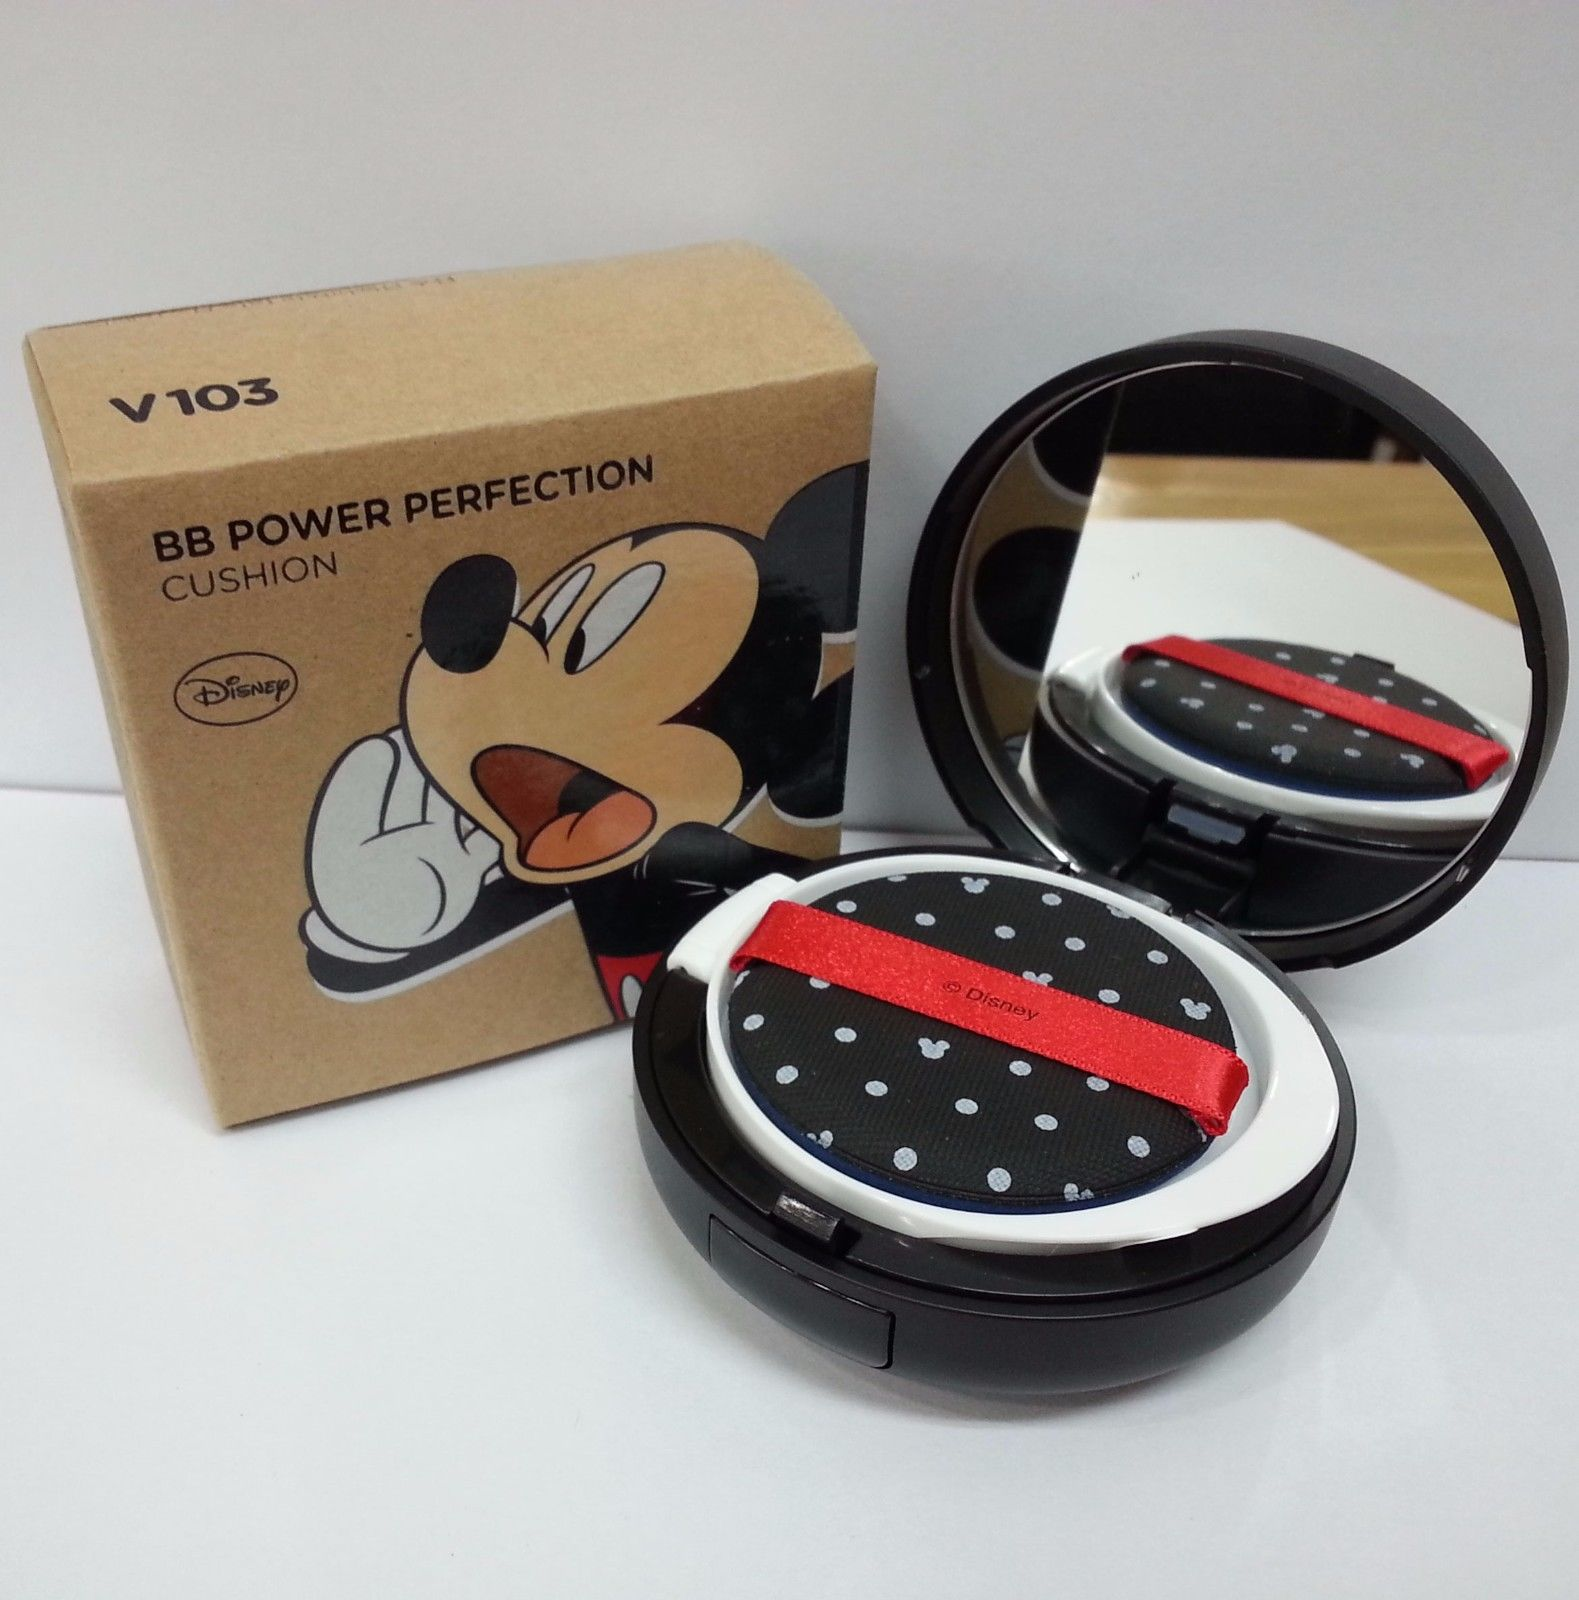 phan-nuoc-thefaceshop-power-perfection-bb-cushion-v201-mickey-disney-01